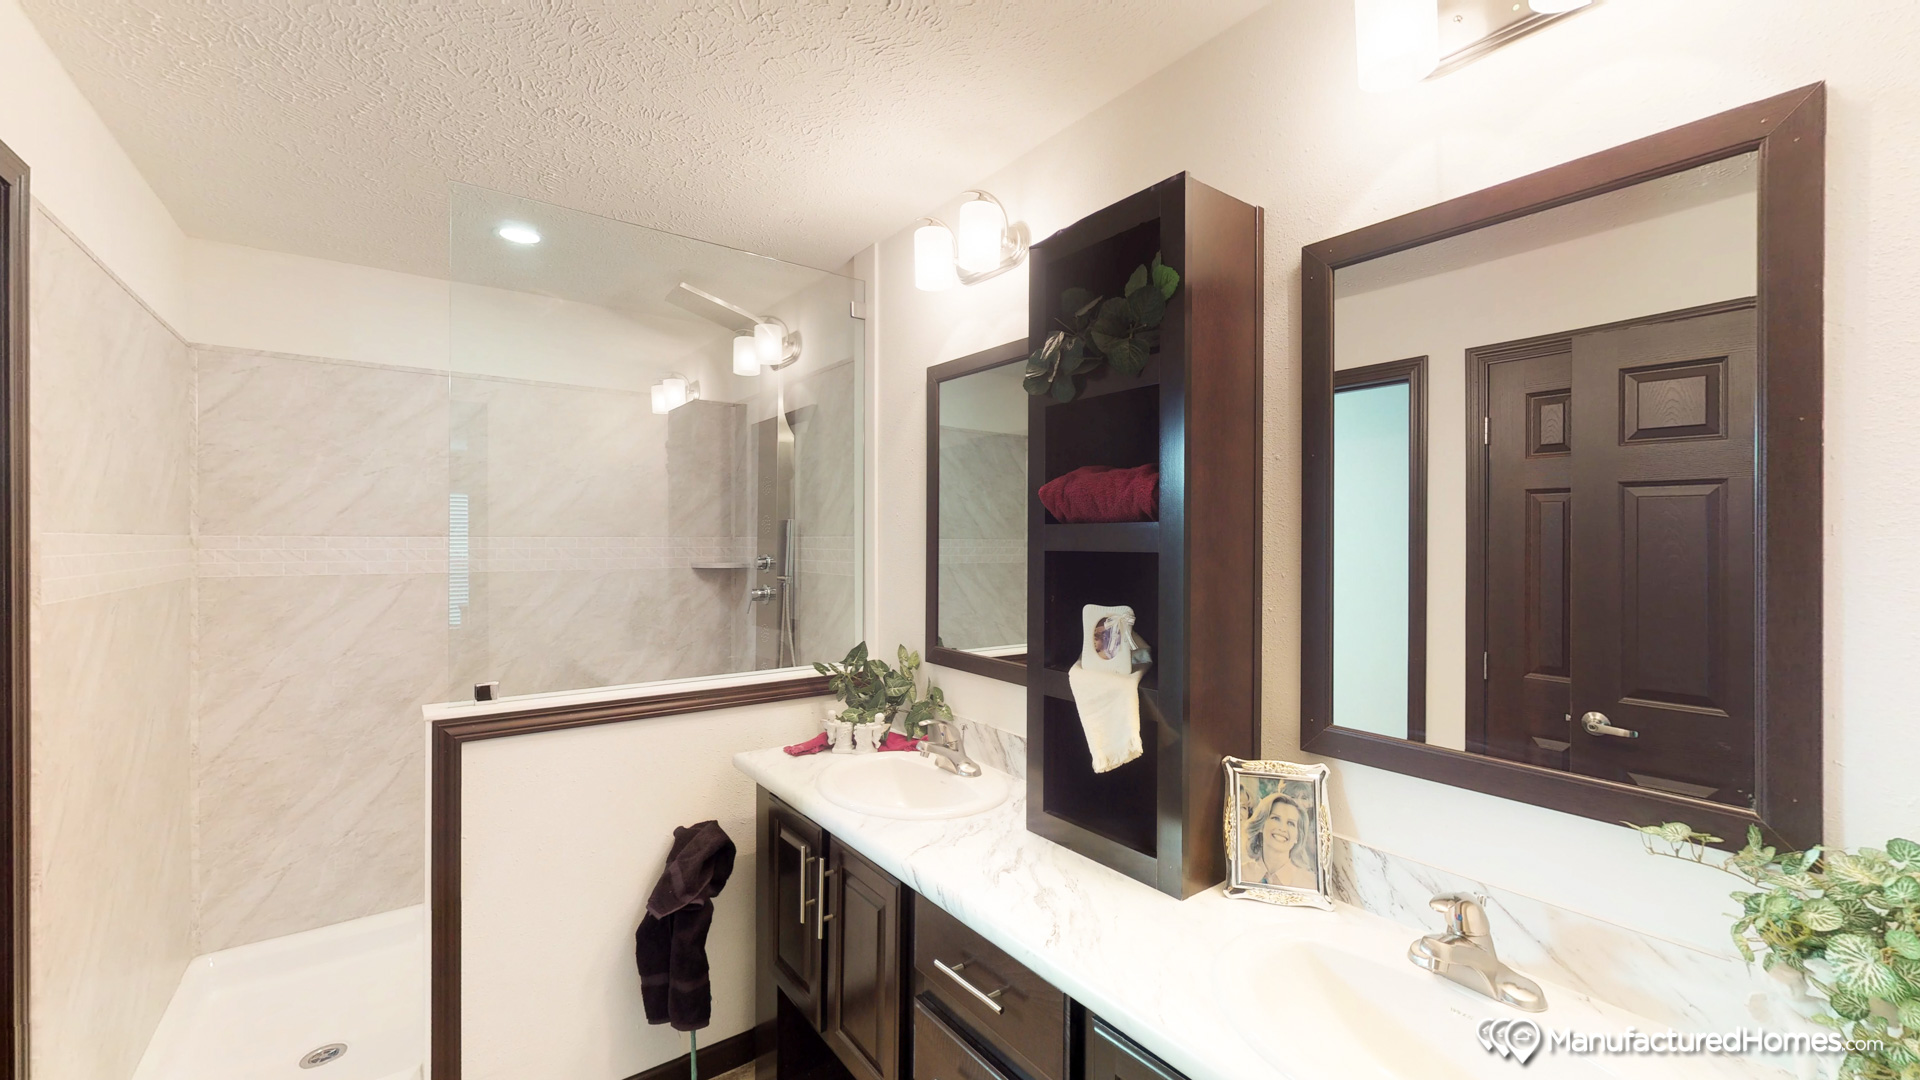 Showcase MW / The Durango - Bathroom